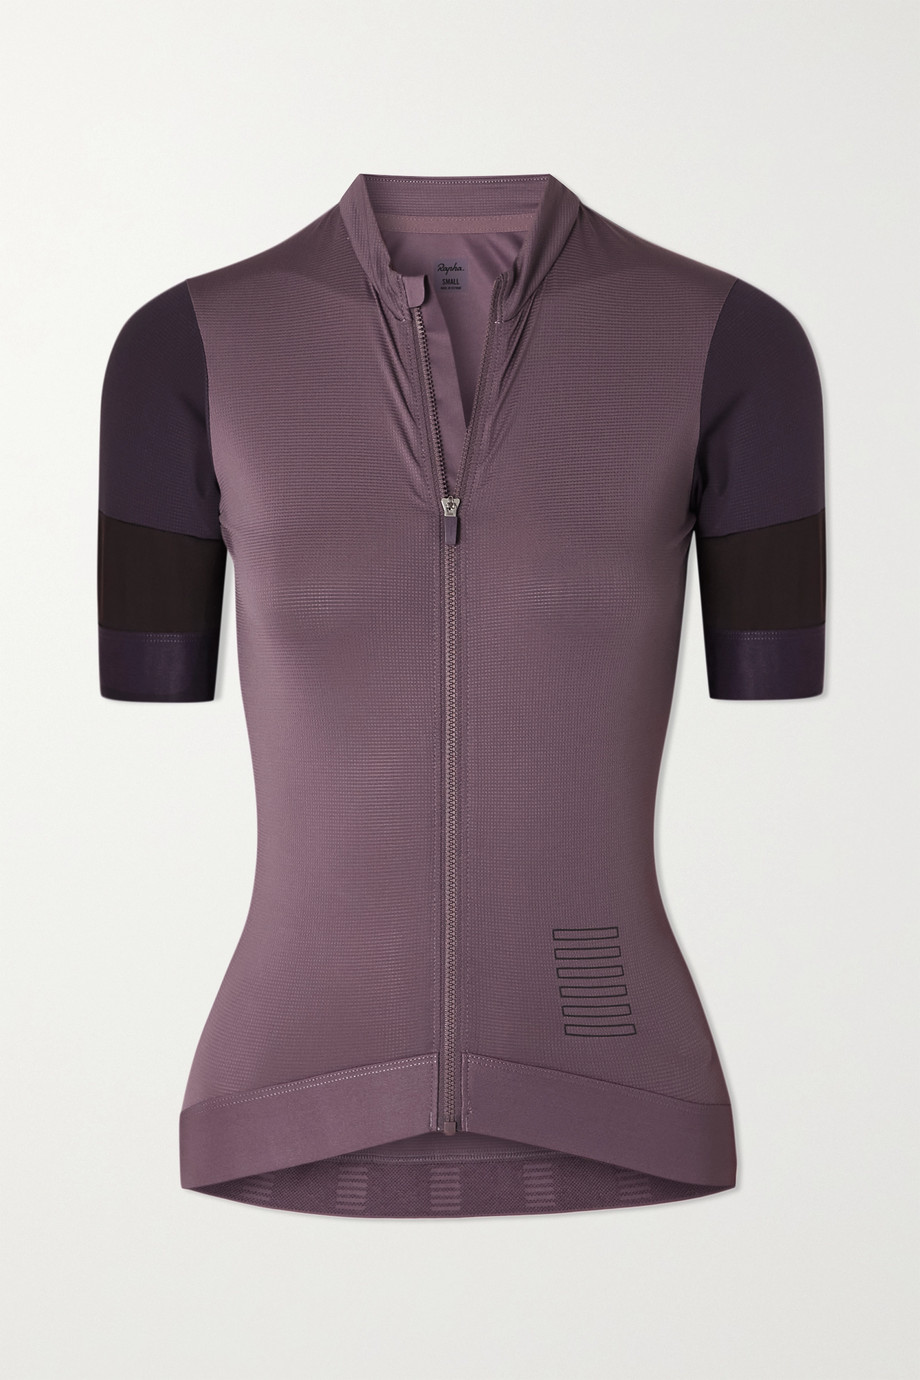 Rapha Pro Team Training color-block stretch cycling jersey